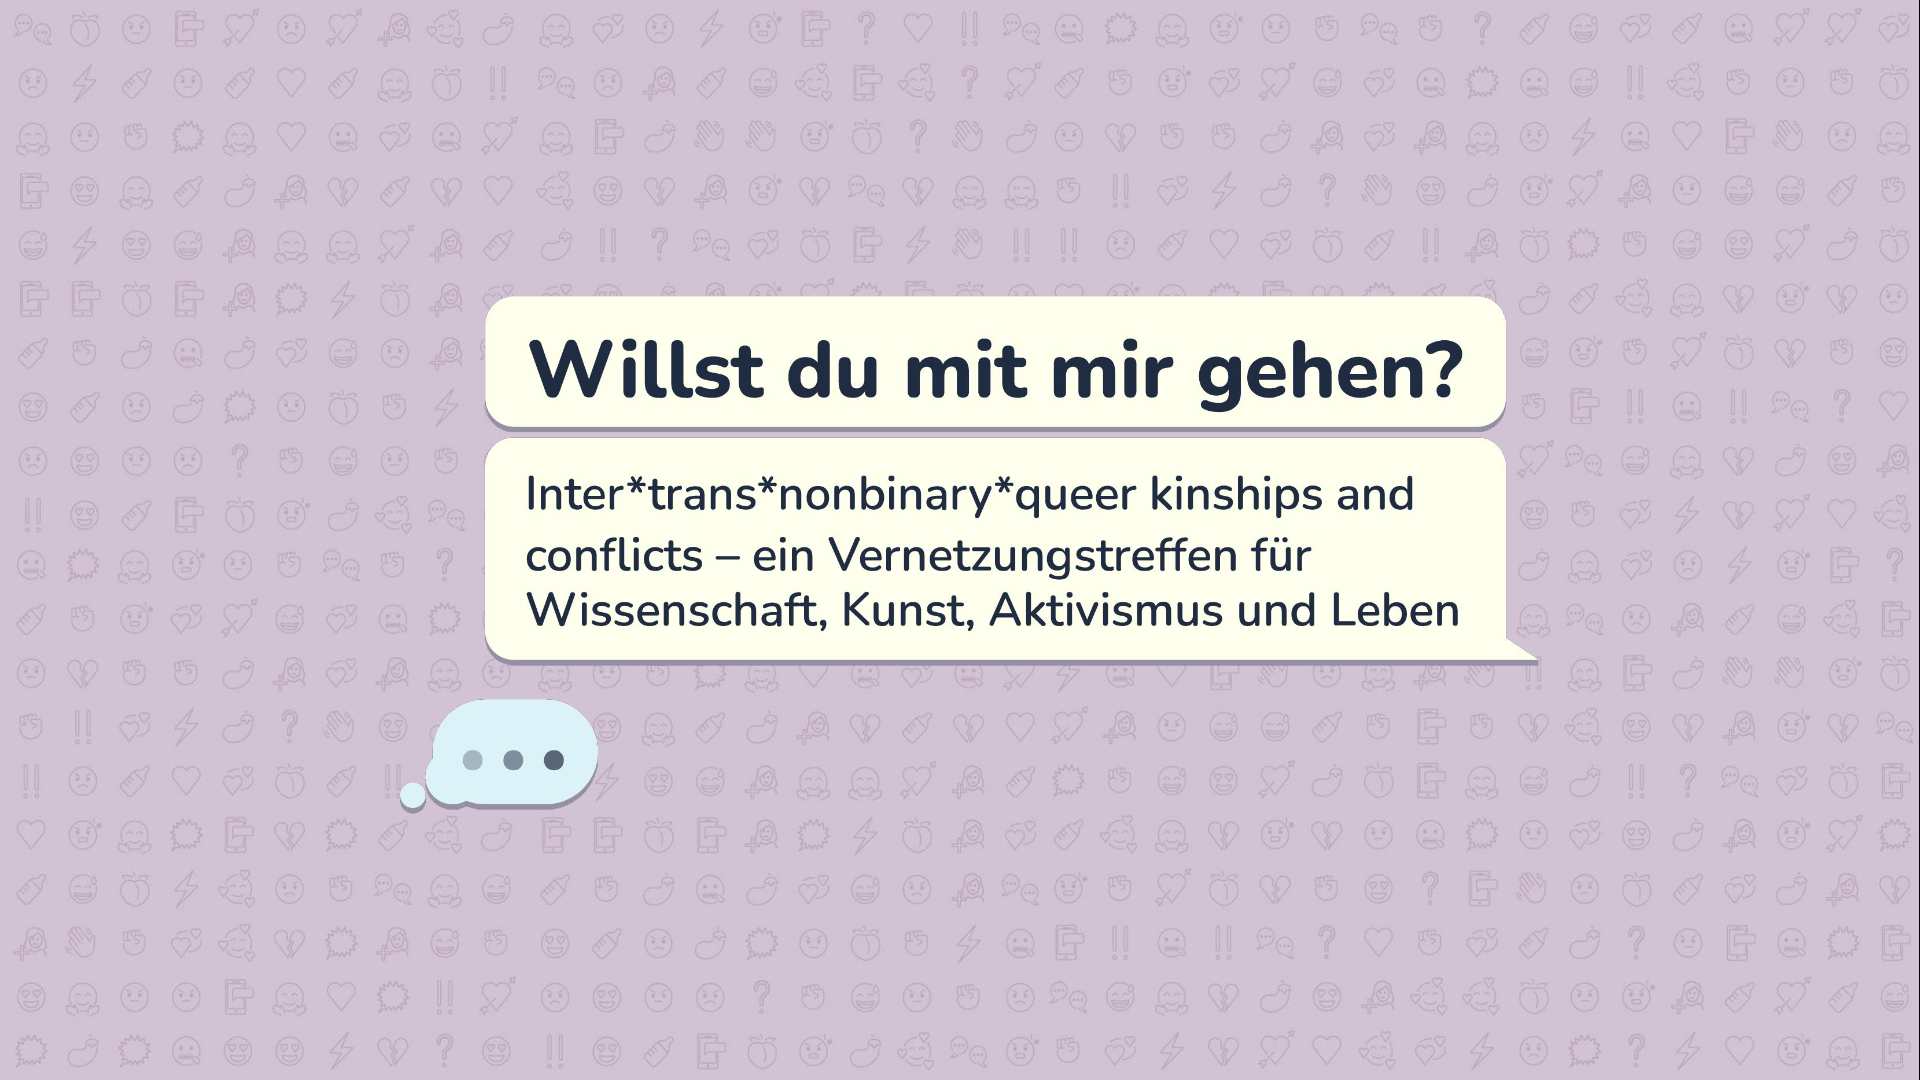 Willst du mit mir gehen? Inter*trans*nonbinary*queer perspectives on kinships and conflicts